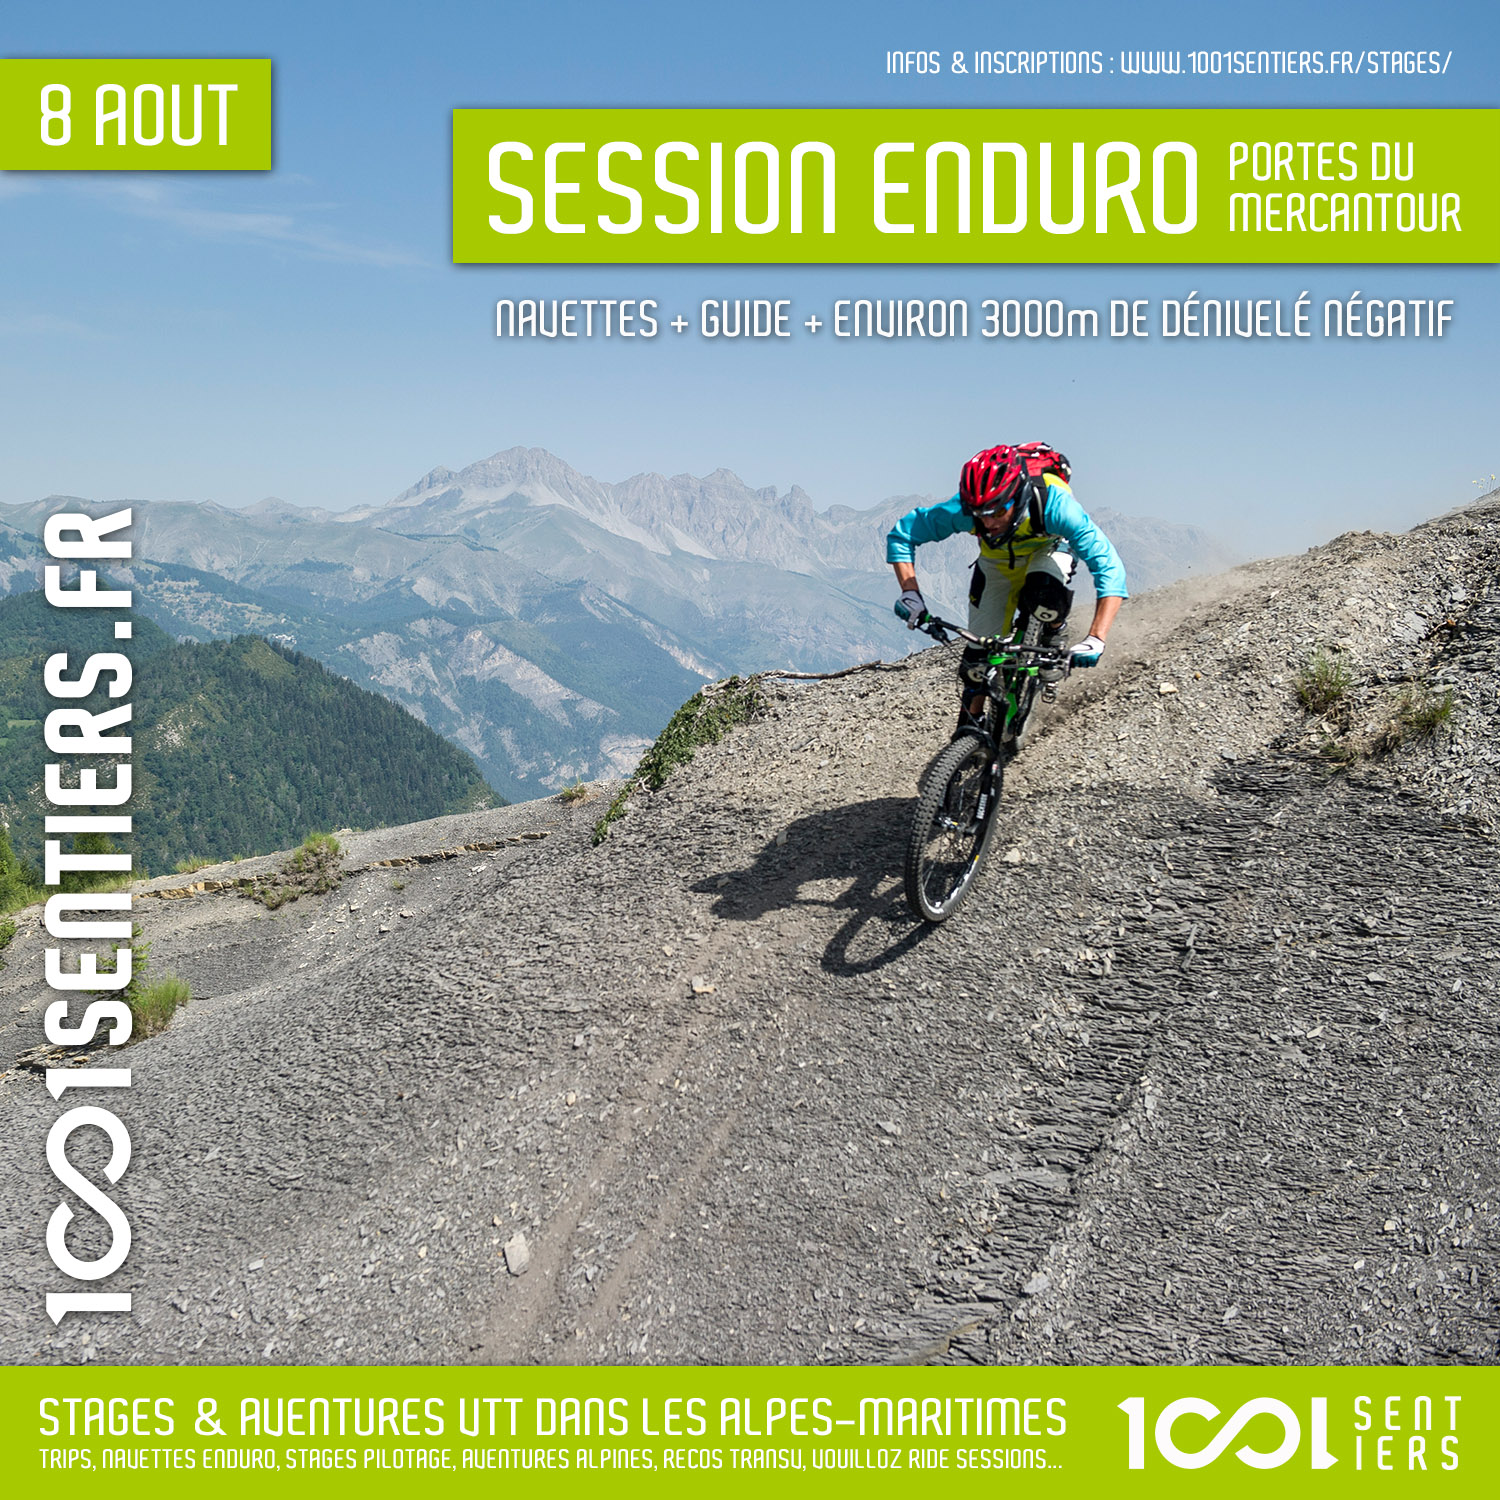 session enduro navettes portes du mercantour guillaumes